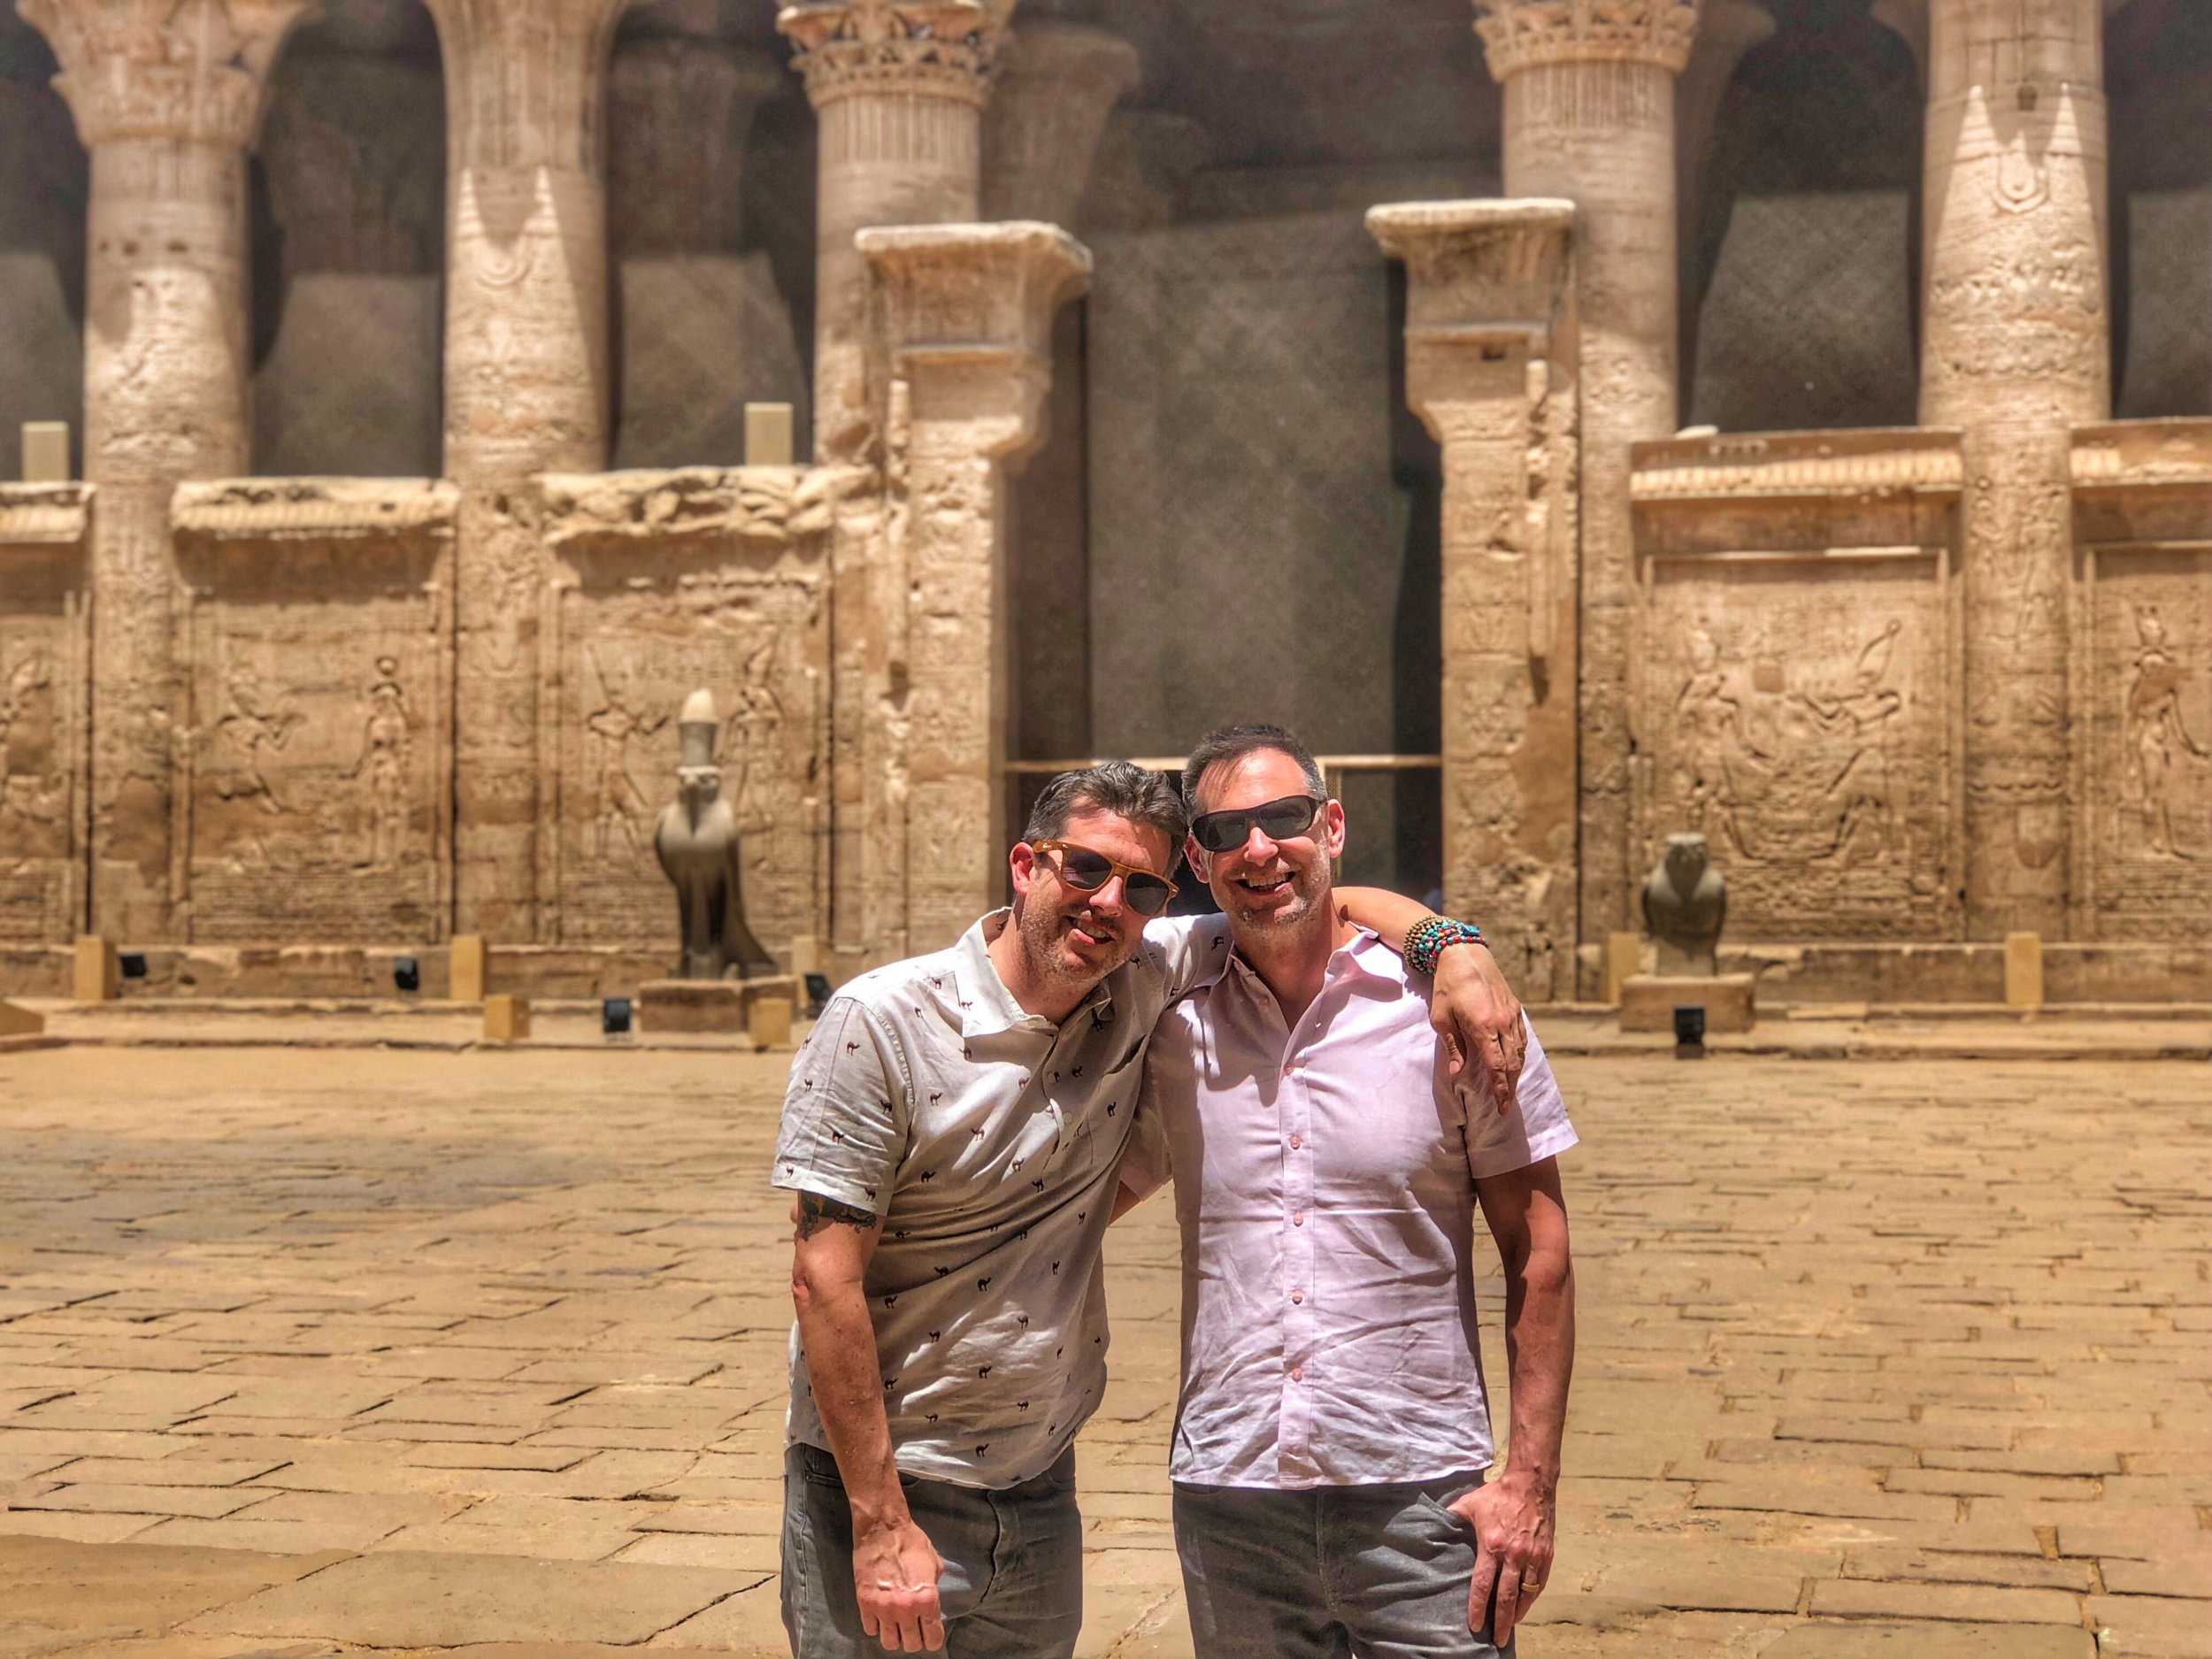 Wally and Duke hired a driver and guide to take them from Aswan to Luxor, stopping at Kom Ombo and Edfu on the way up